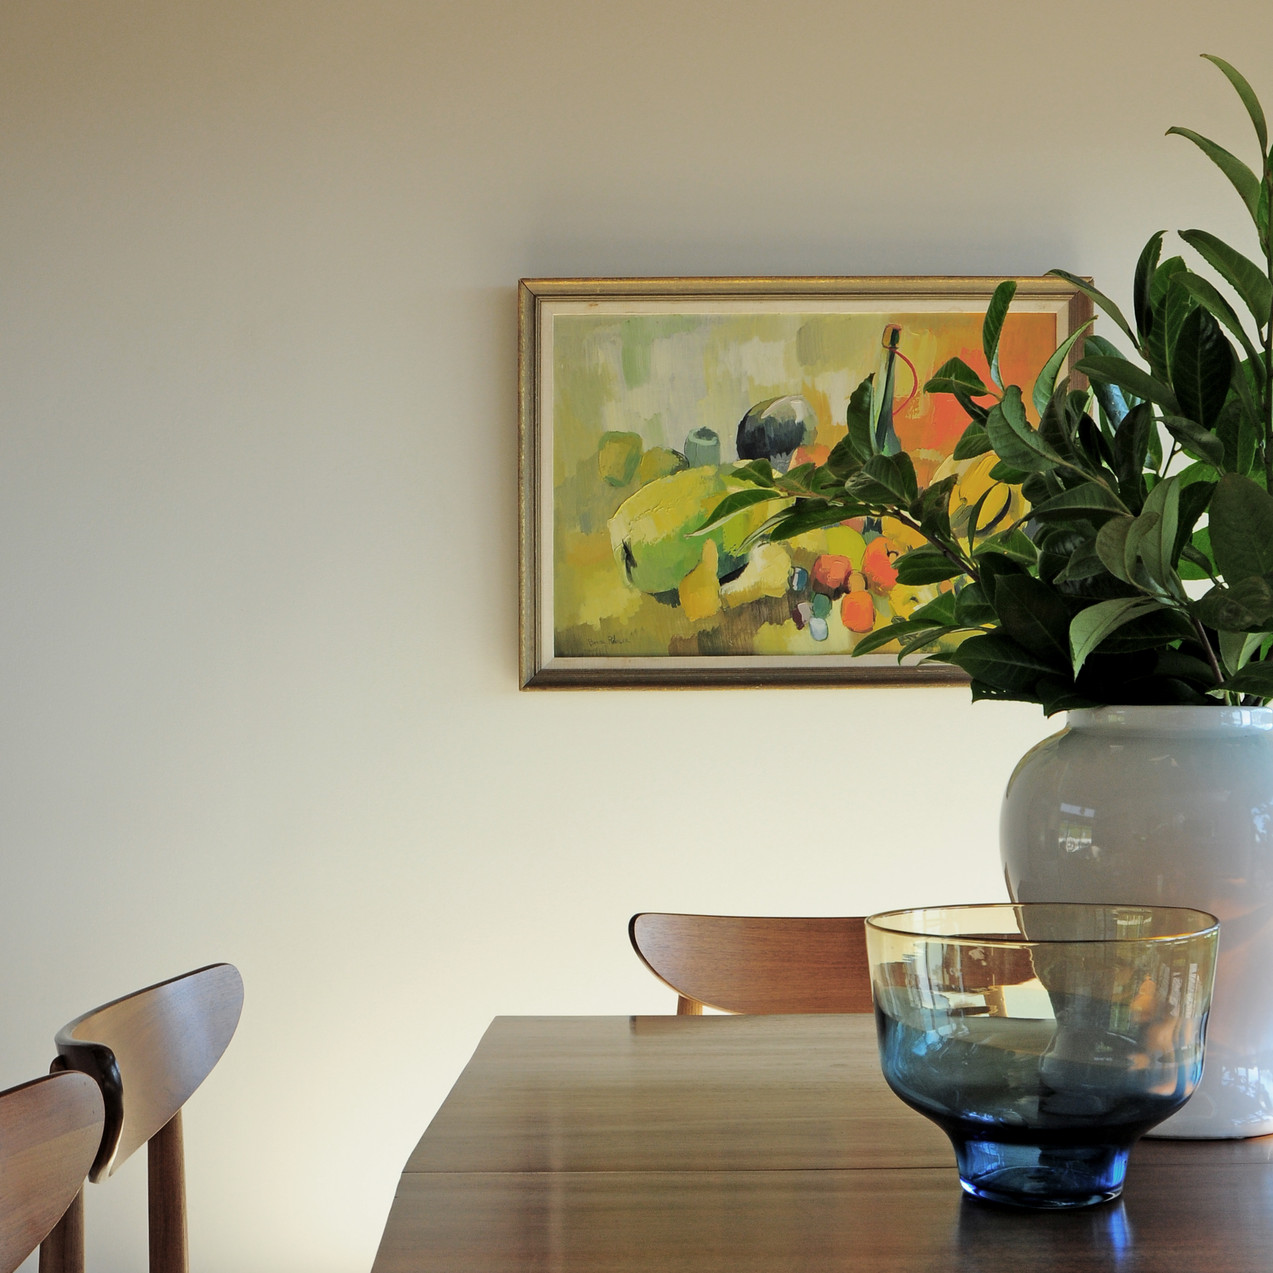 DCP_7110View_NorCal_FamilyRoom_4.jpg